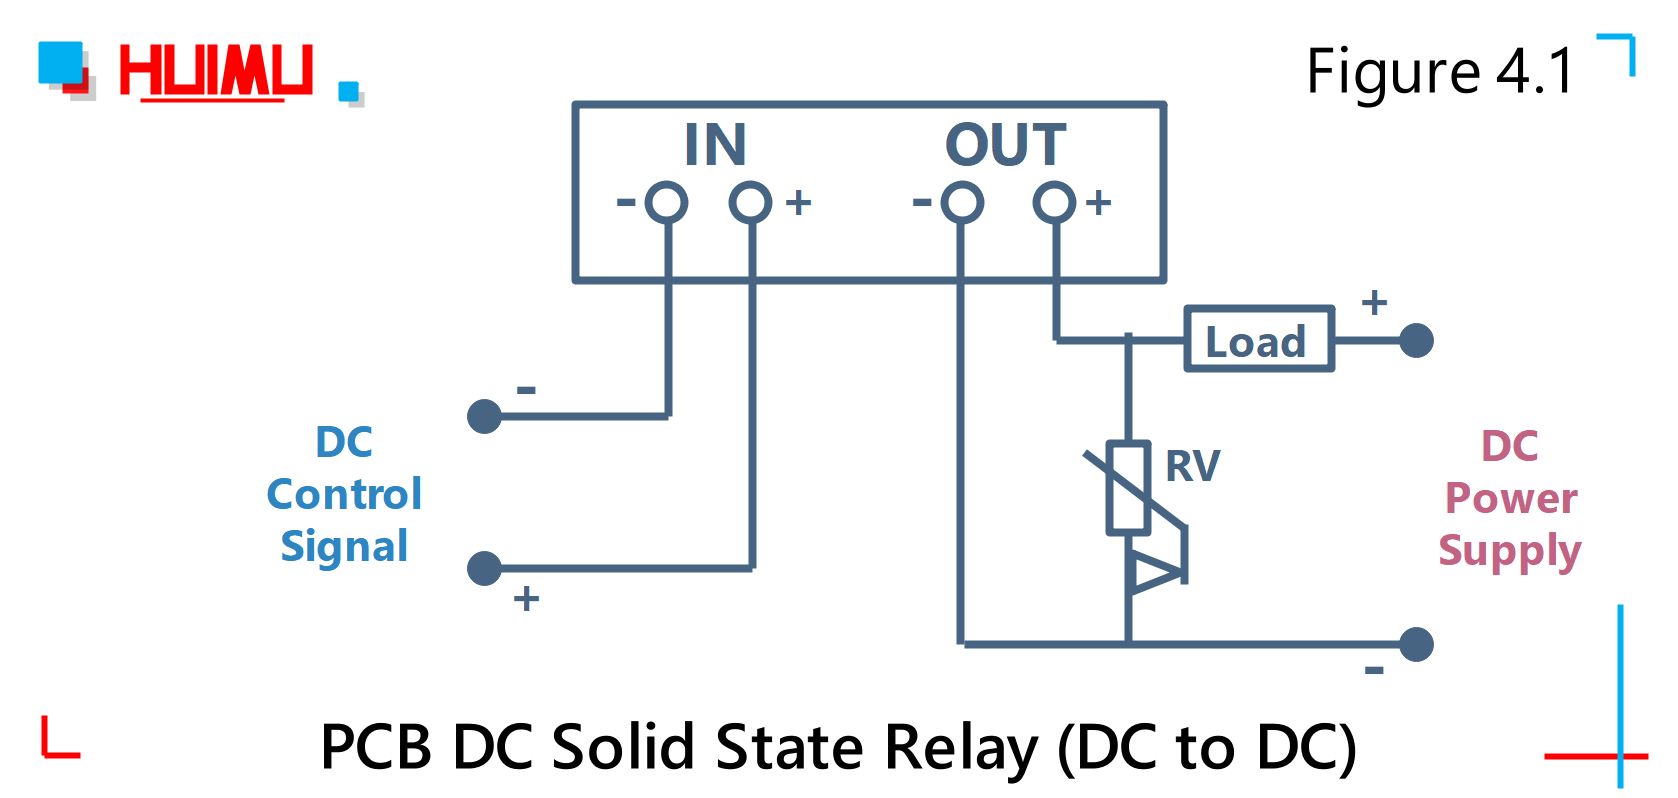 PCB DC solid state relay (DC to DC) wiring diagram and circuit diagram Type 1